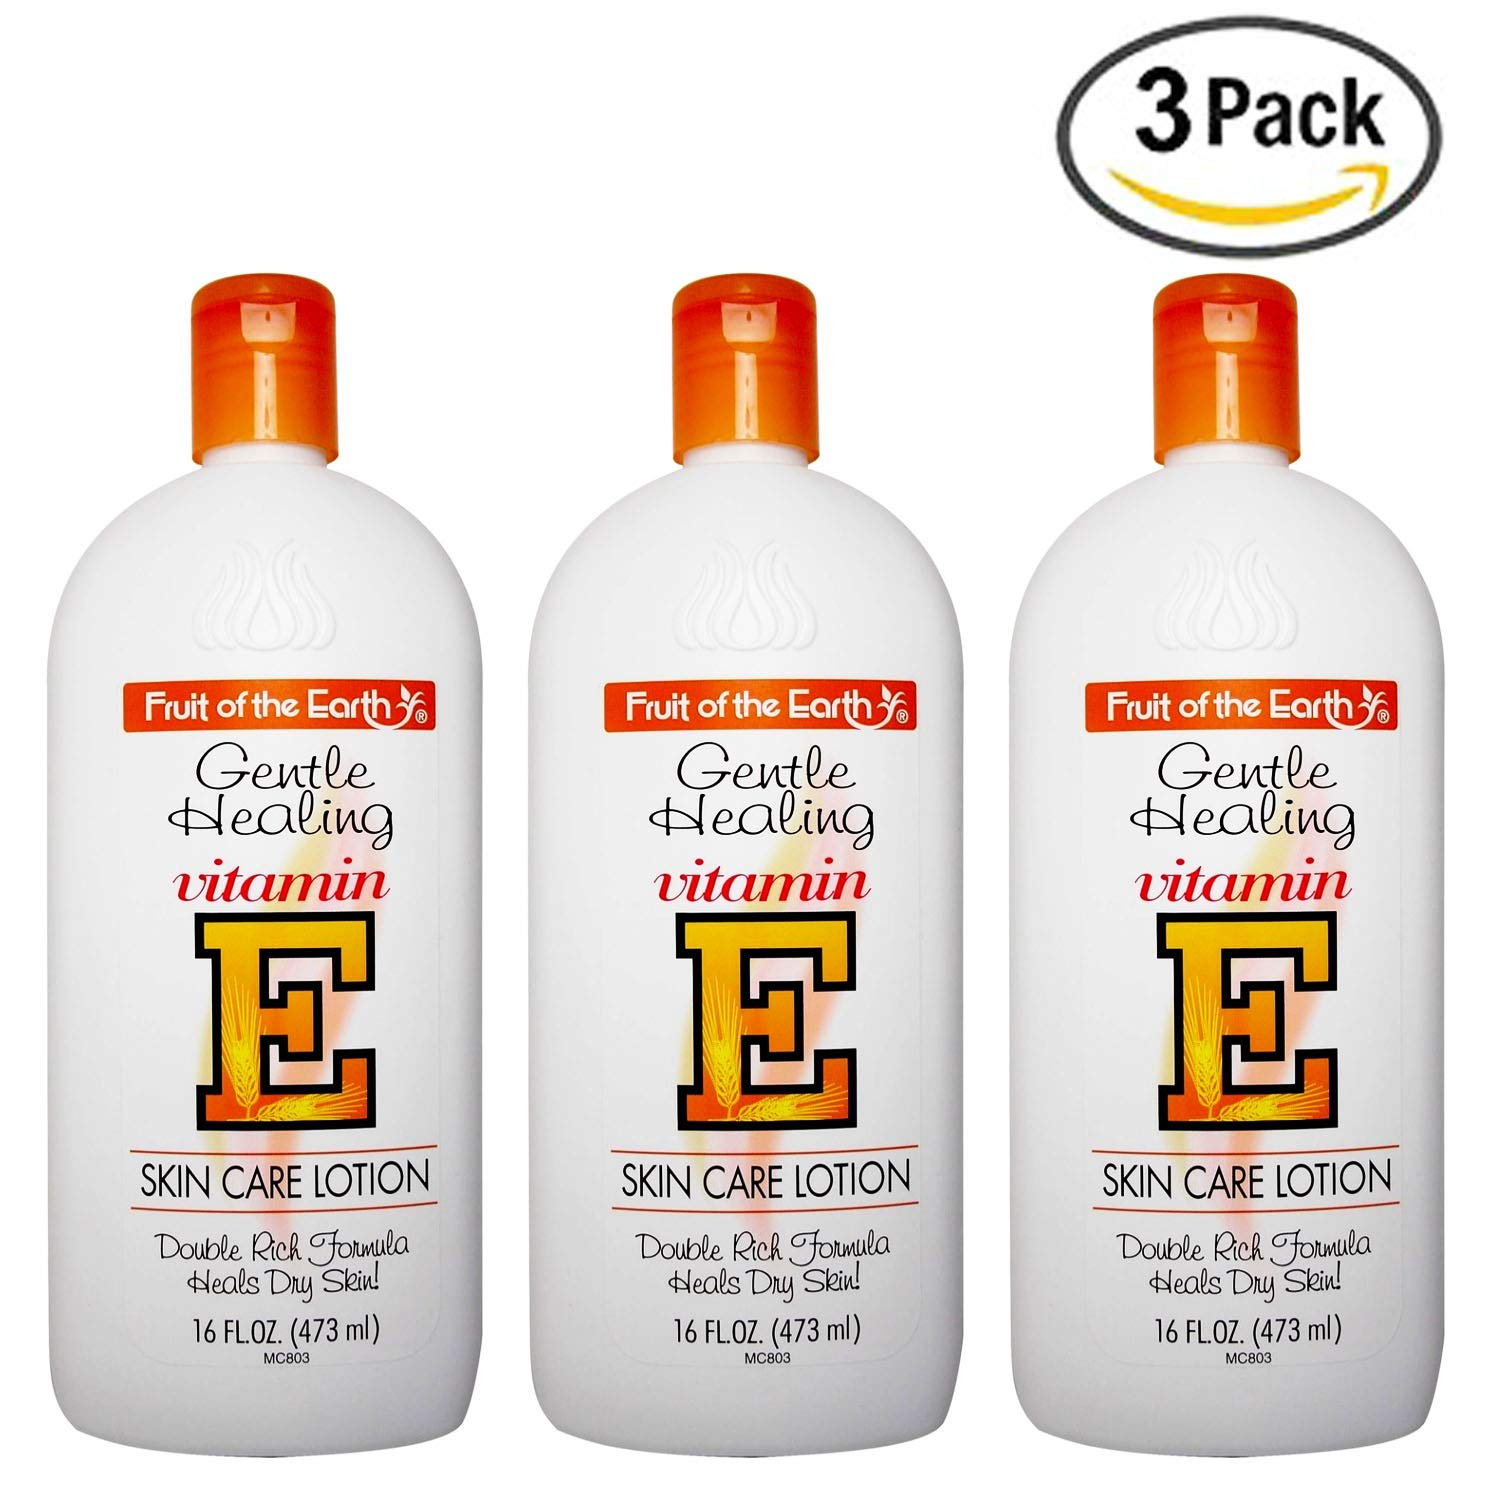 Fruit of The Earth Gentle Healing Vitamin E Skin Care Lotion 16 Fl Oz (3 Pack)